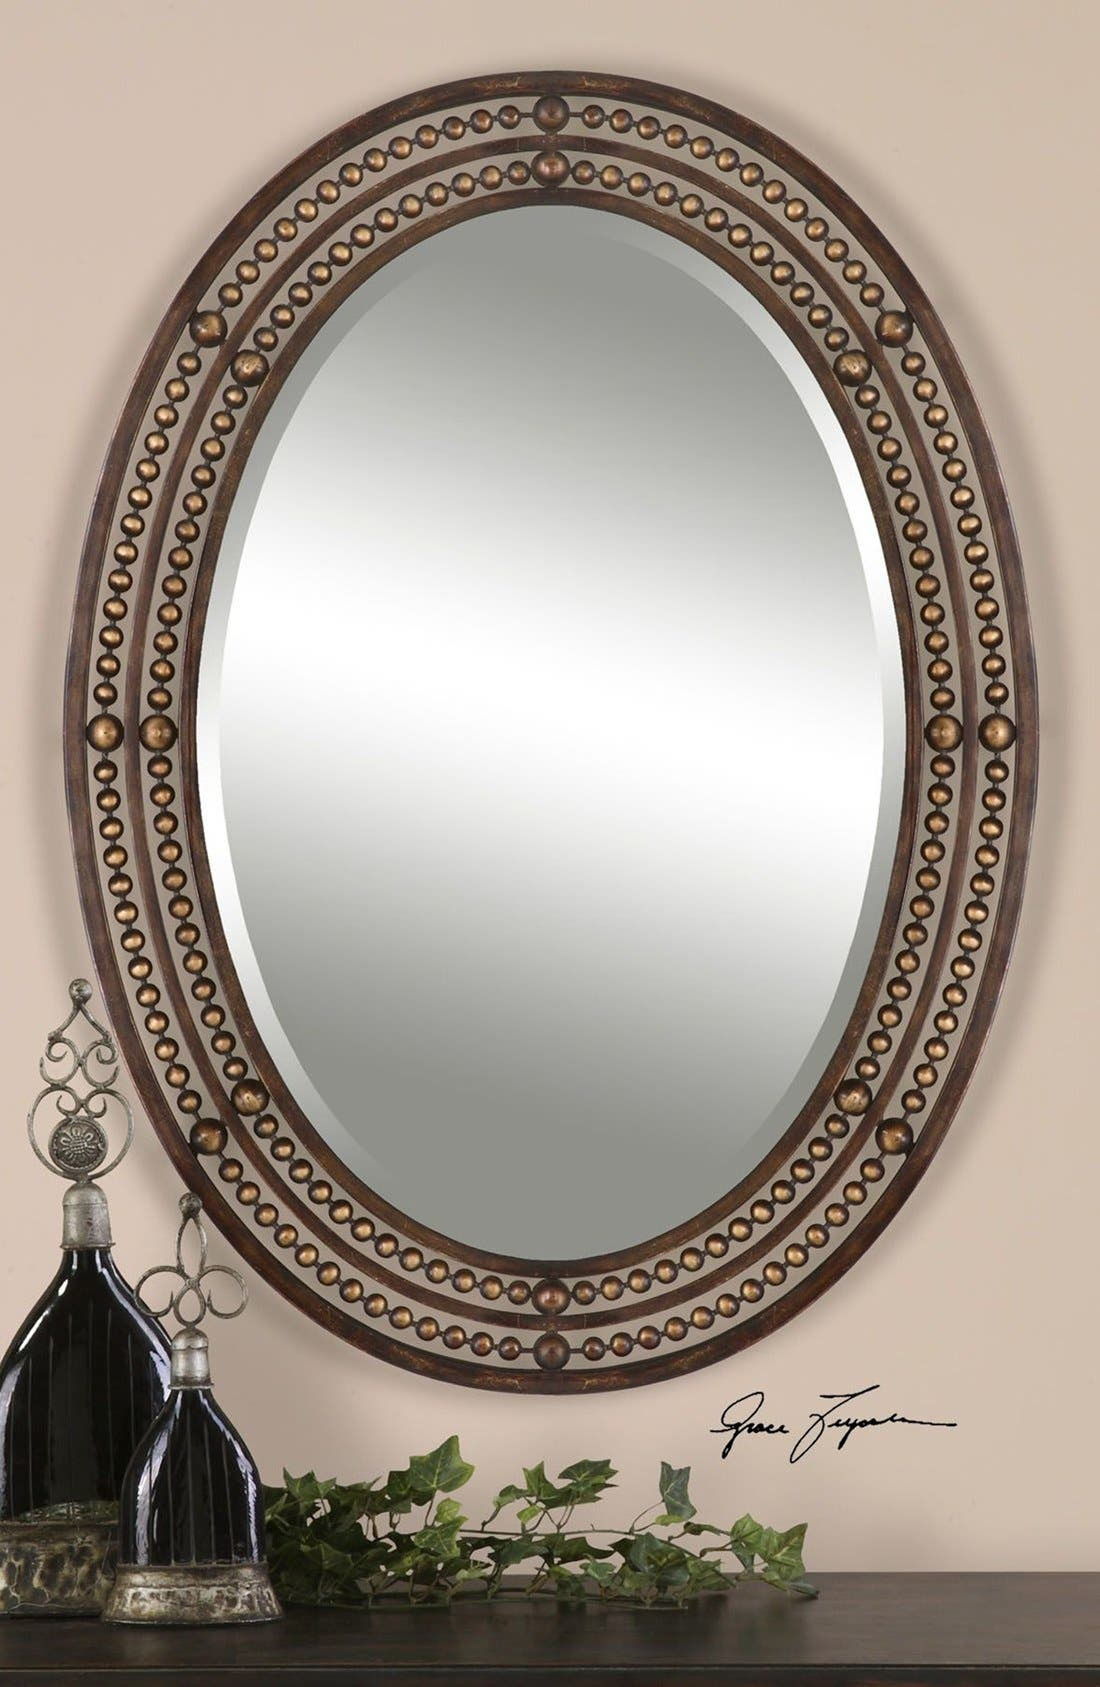 'Matney' Distressed Bronze Oval Wall Mirror,                             Alternate thumbnail 5, color,                             200